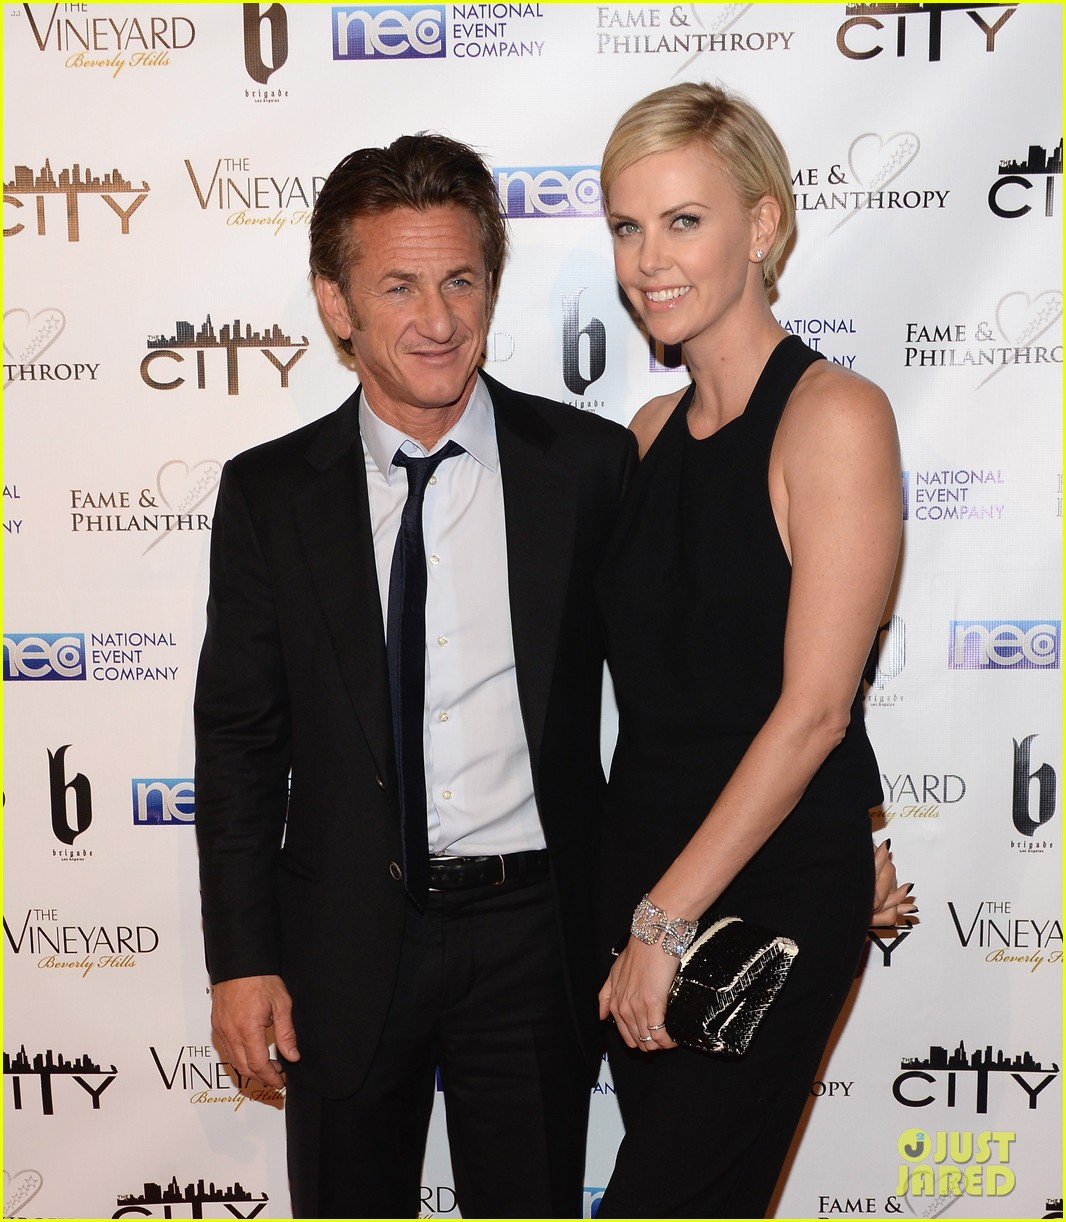 charlize theron sean penn walk first red carpet together at oscars 2014 party 07